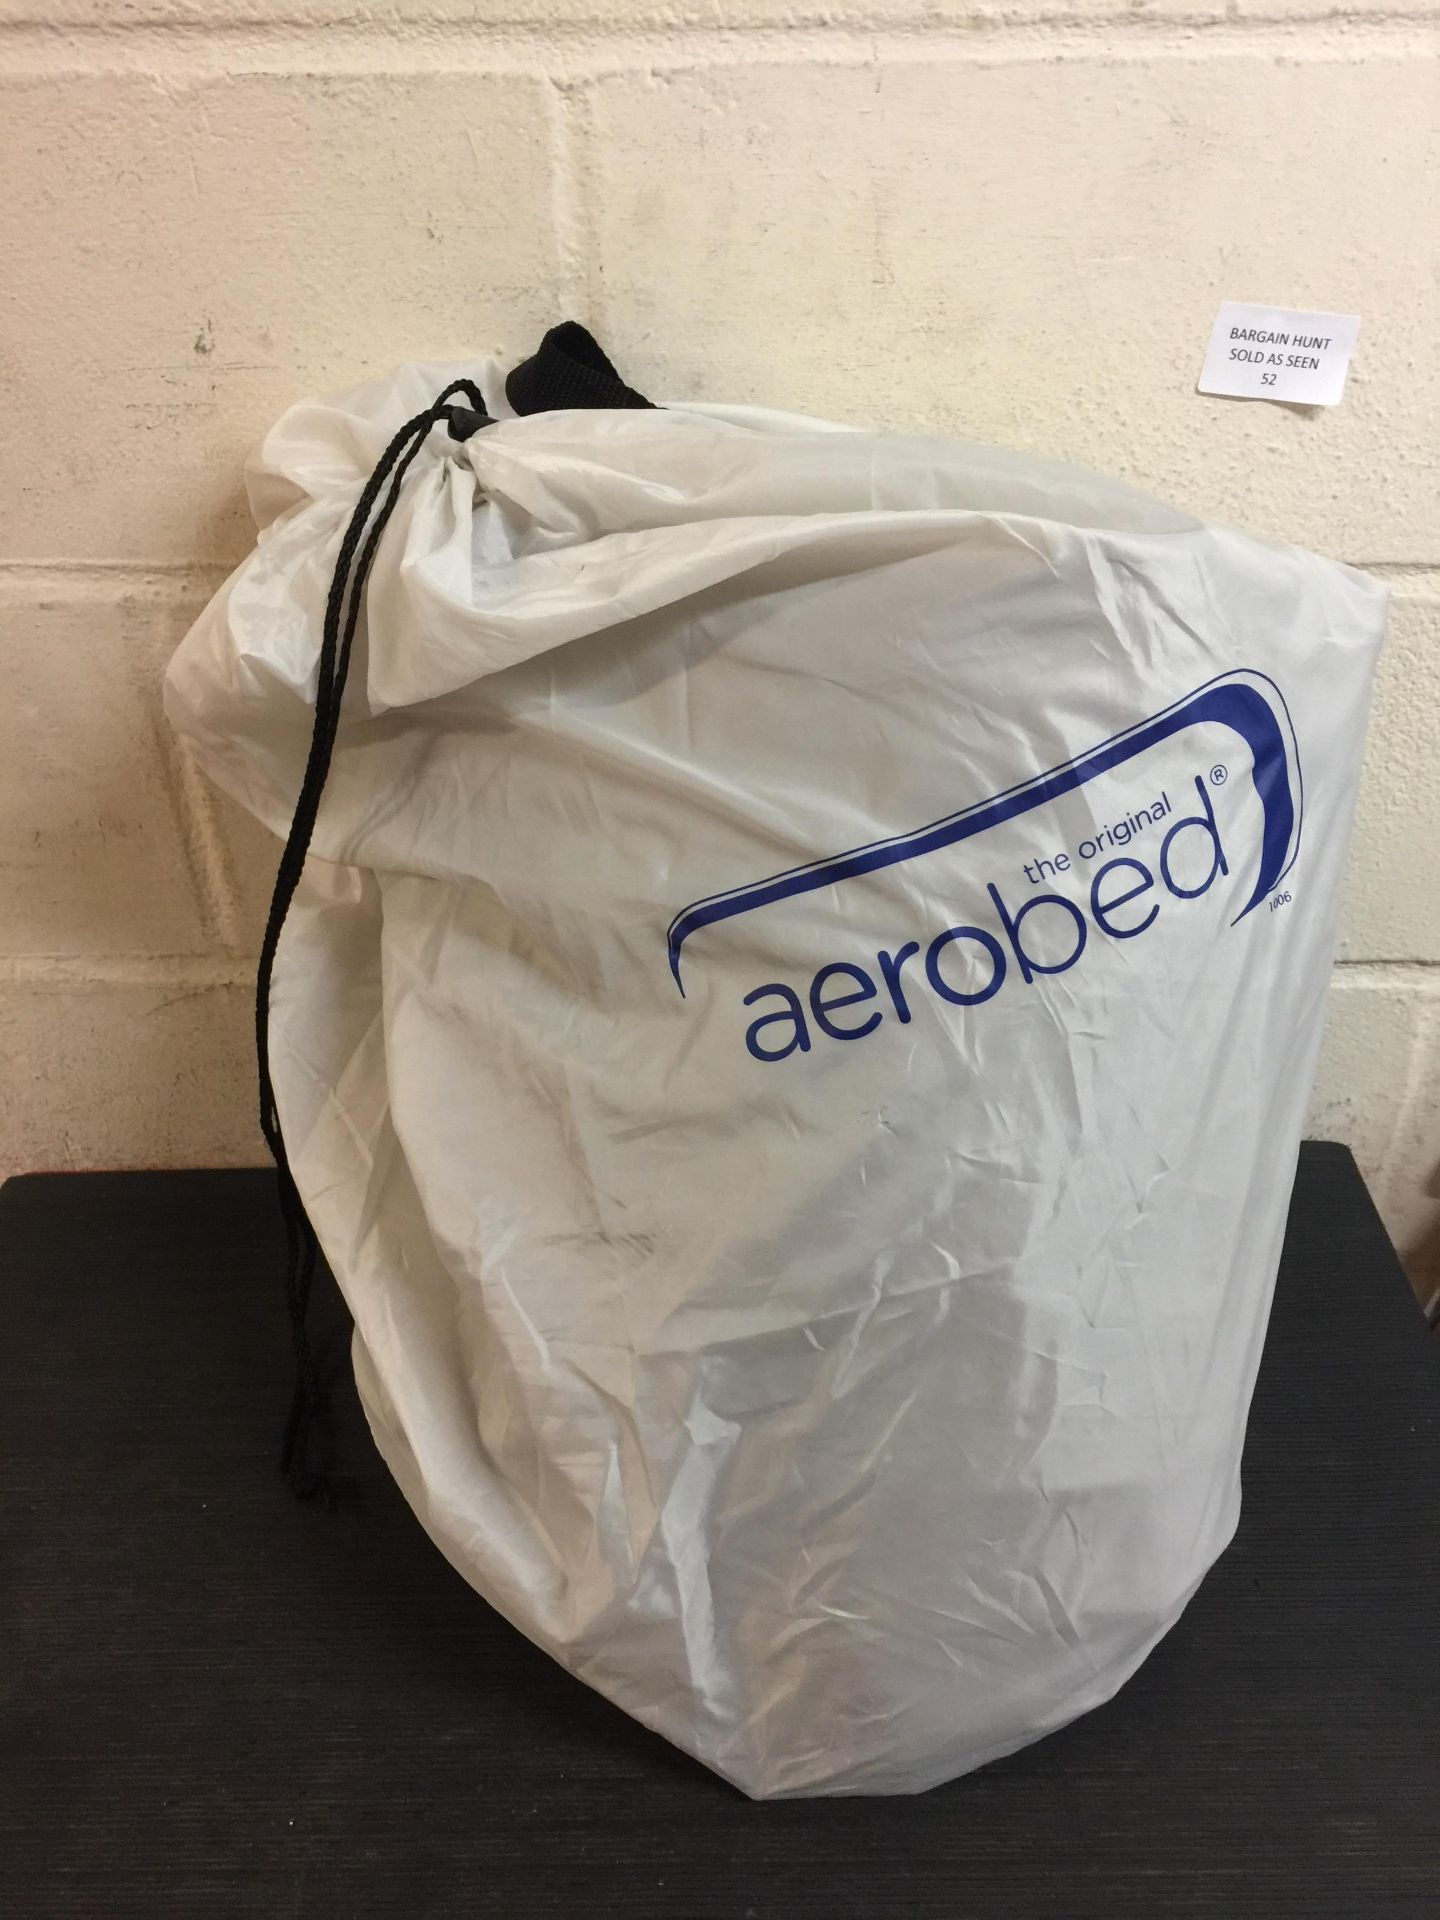 Lot 52 - Aerobed Luxury Air Bed with Built-In Electric Pump